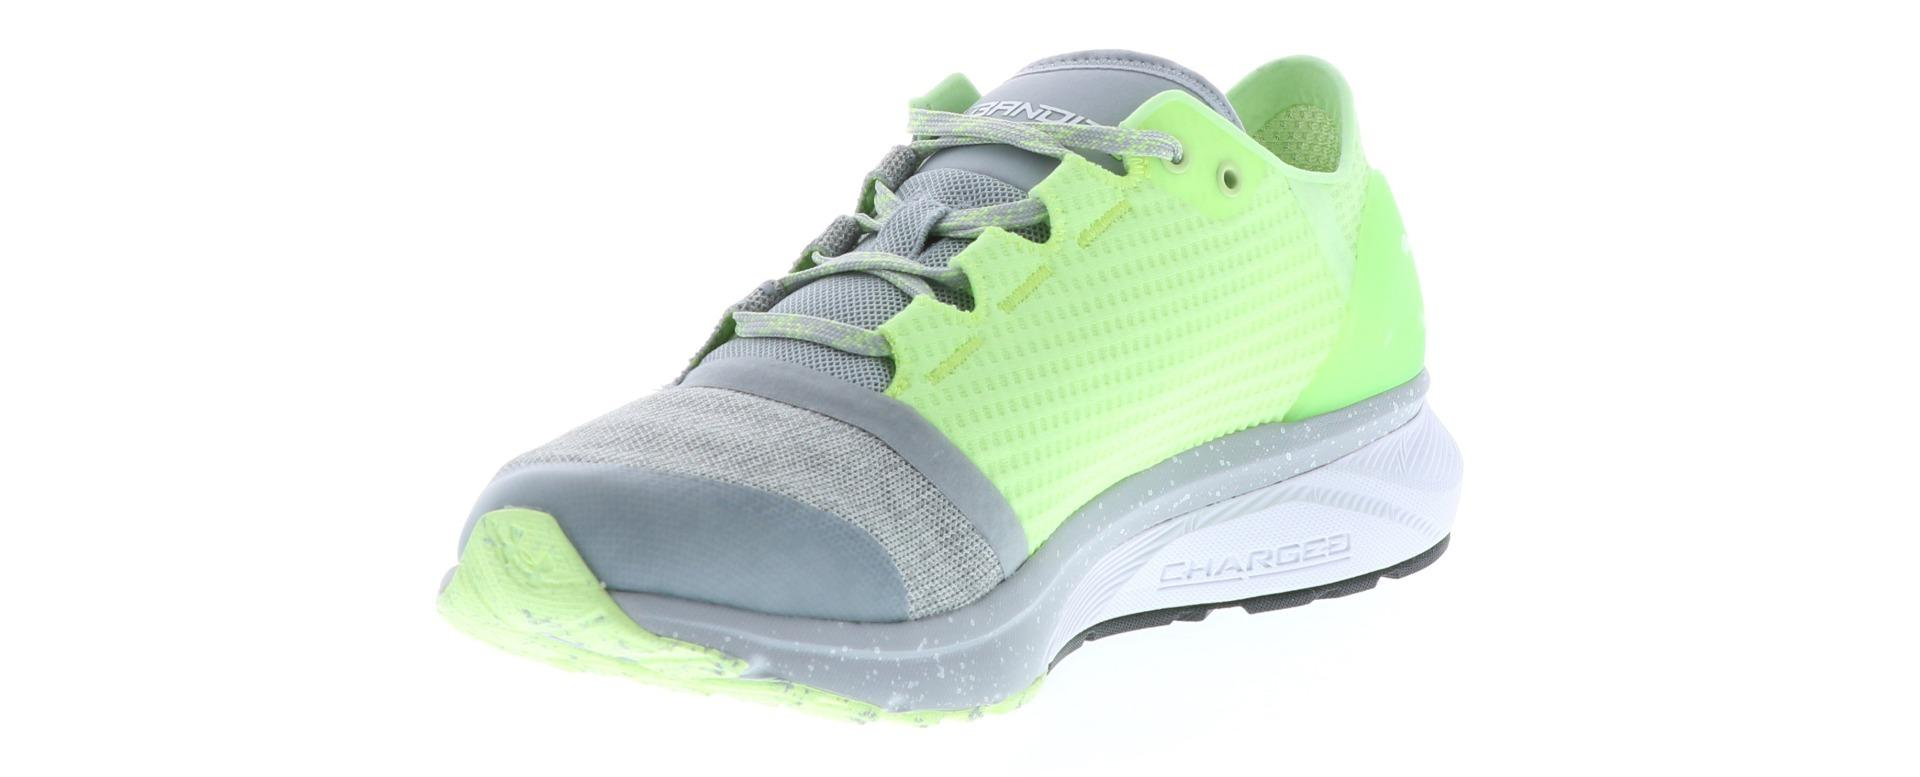 on sale 33803 c658e UNDER ARMOUR Women's Charged Bandit 2 Running Shoes|Shoe ...